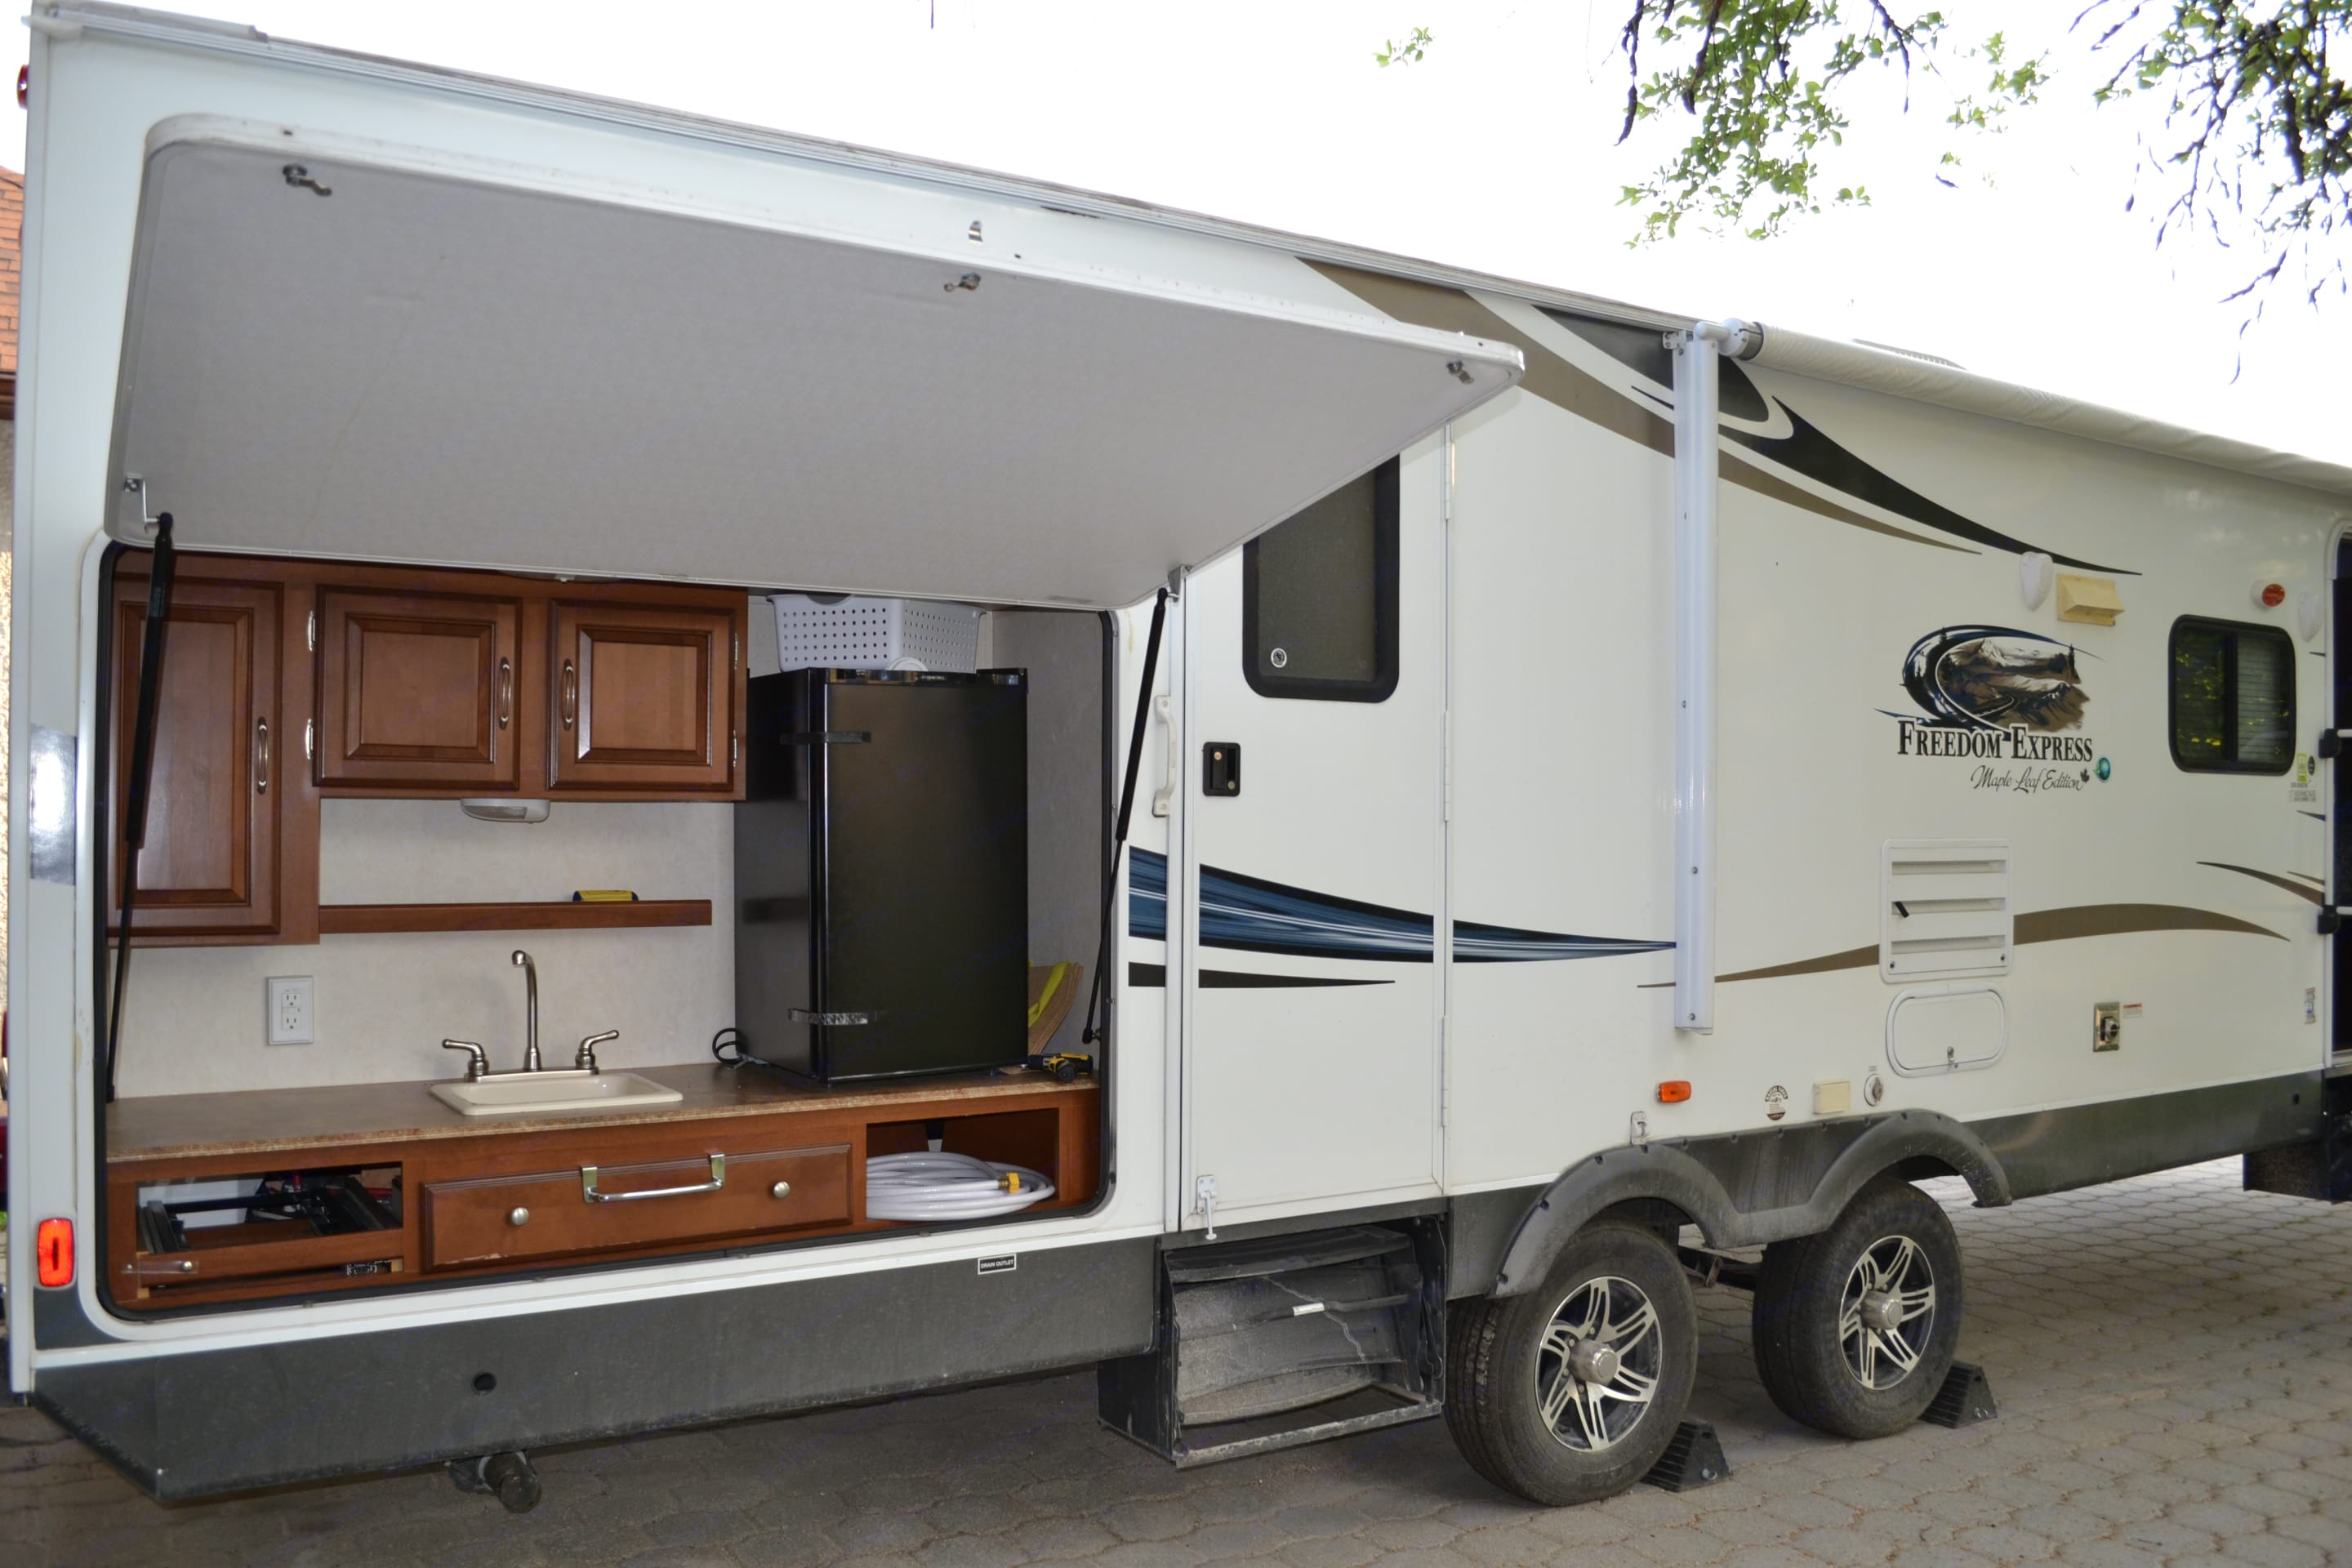 Outdoor Kitchen with sink & 2nd fridge - very handy to keep the fun going on outside as opposed to having to run inside!. Coachmen Freedom Express 2013